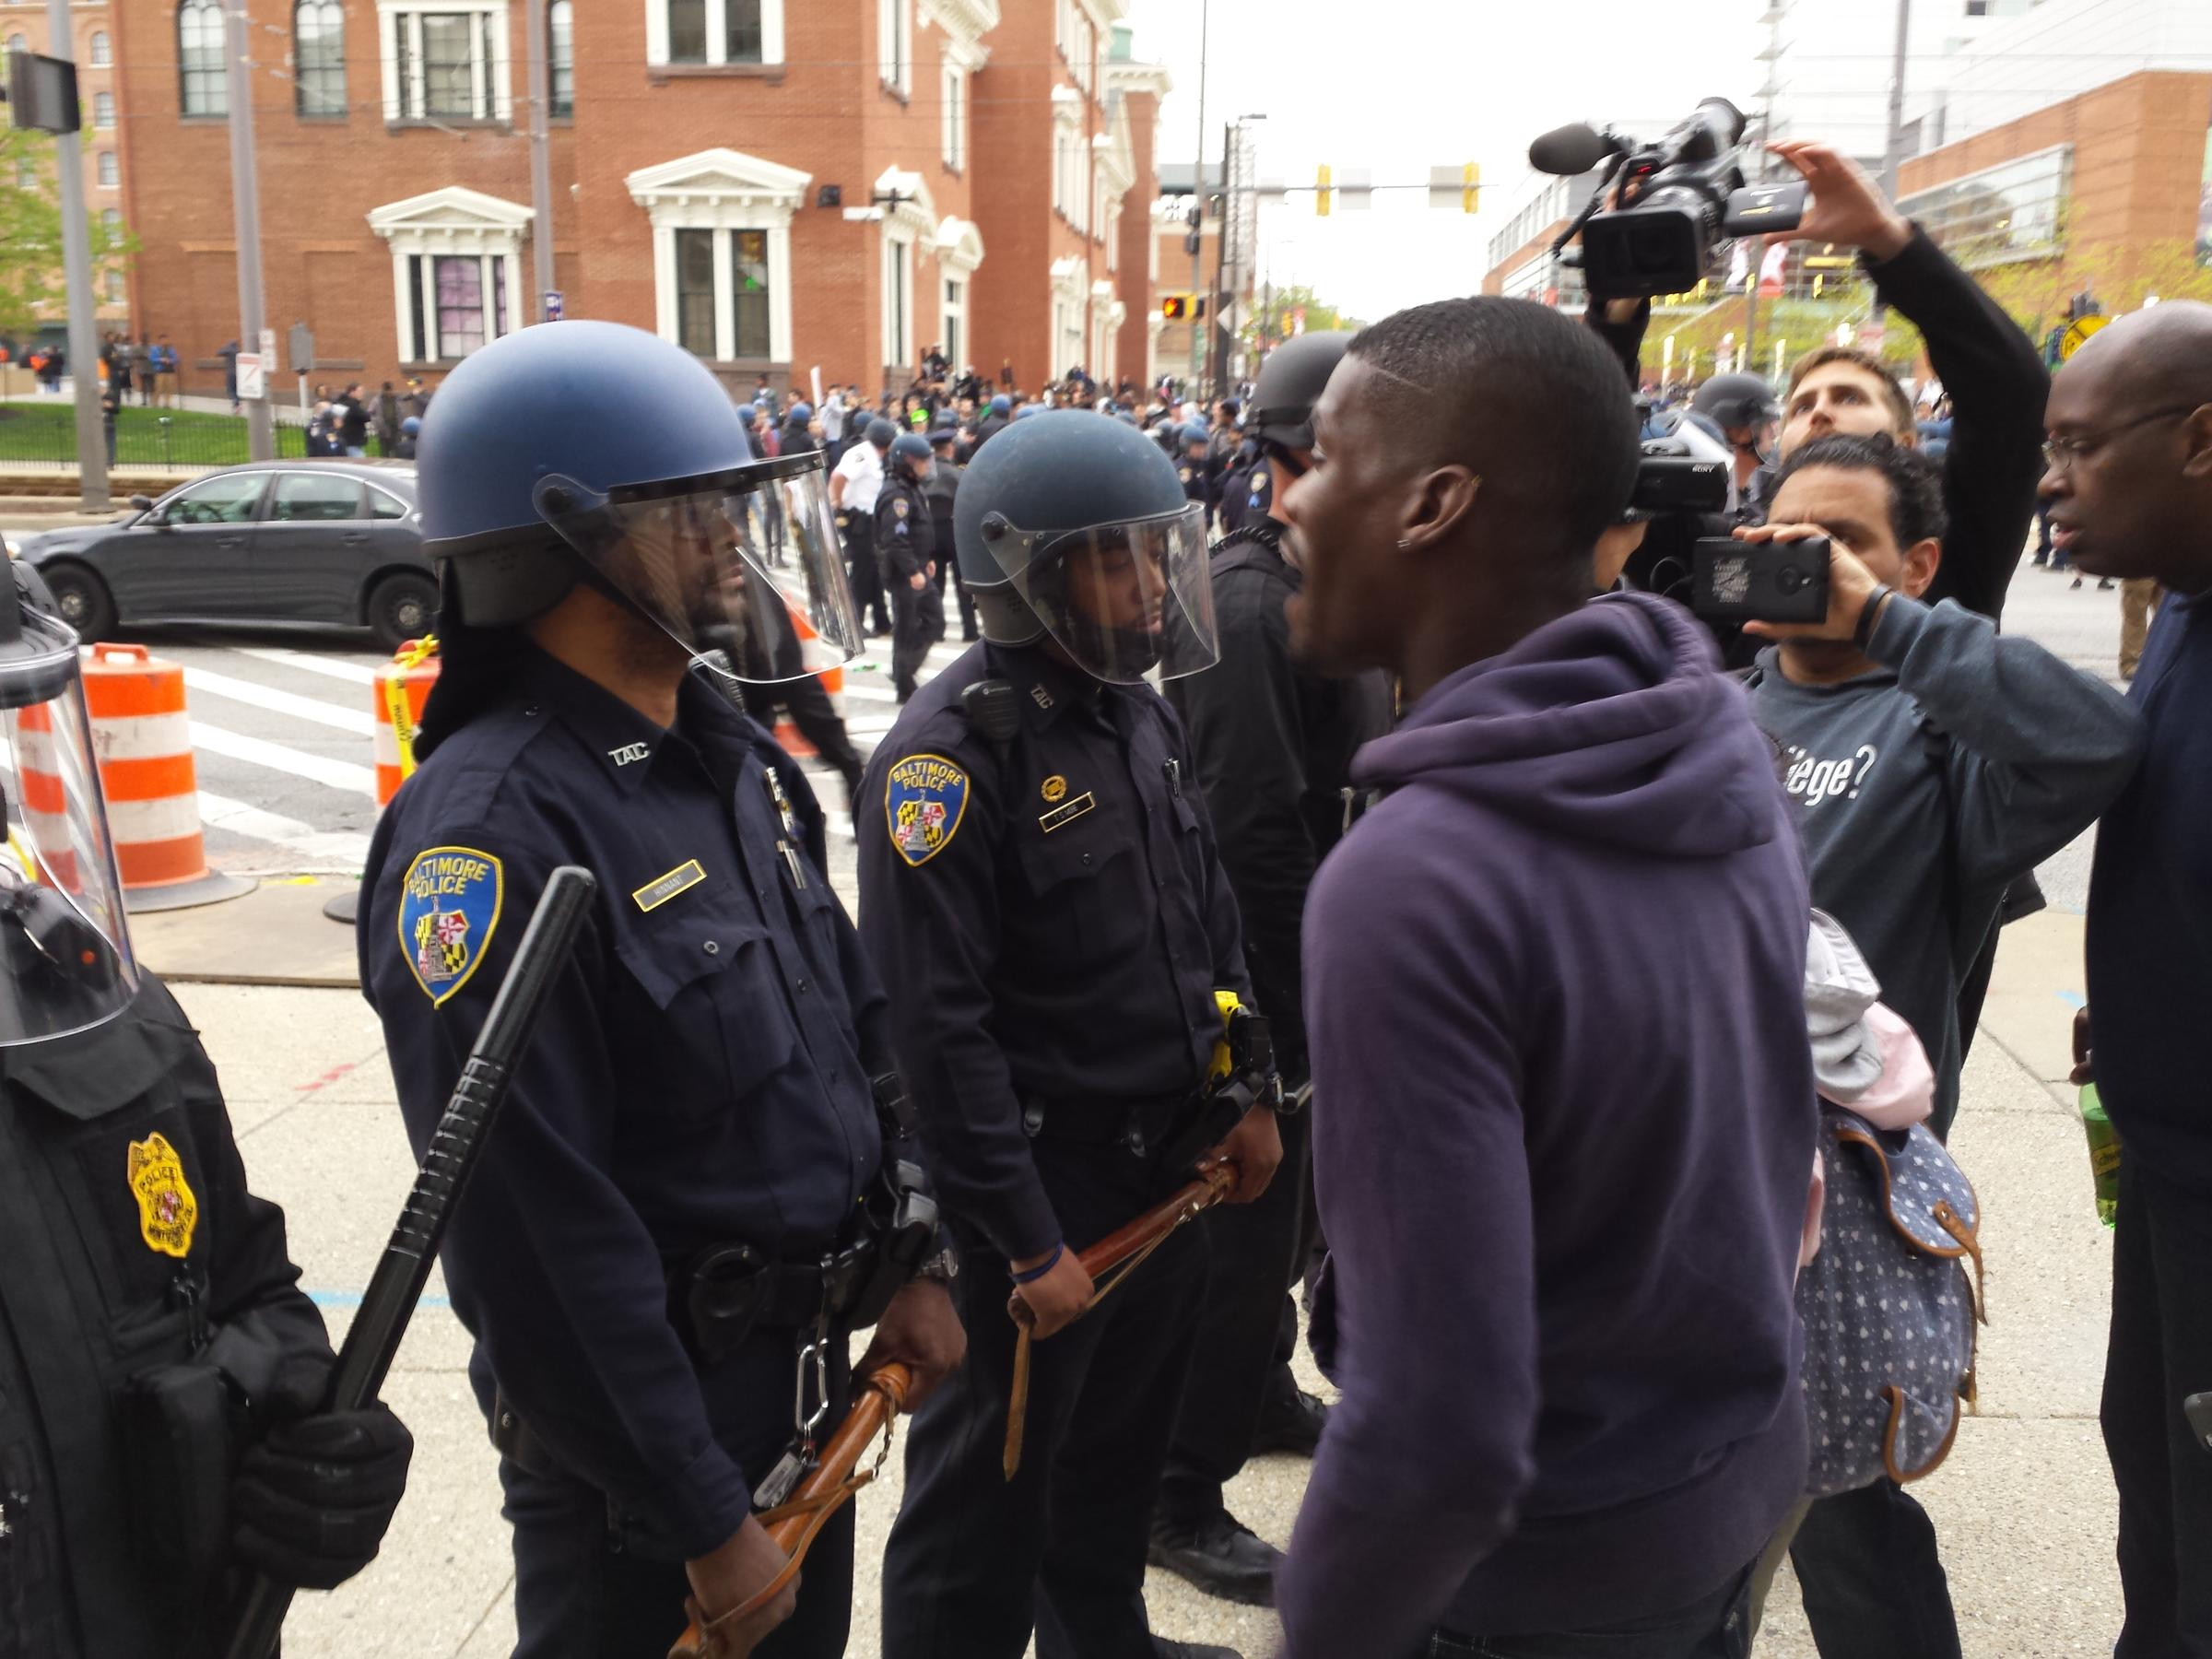 Baltimore police officers in riot gear push protestors back along - A Protester Heckling A Baltimore Police Officer At Howard And Camden Streets